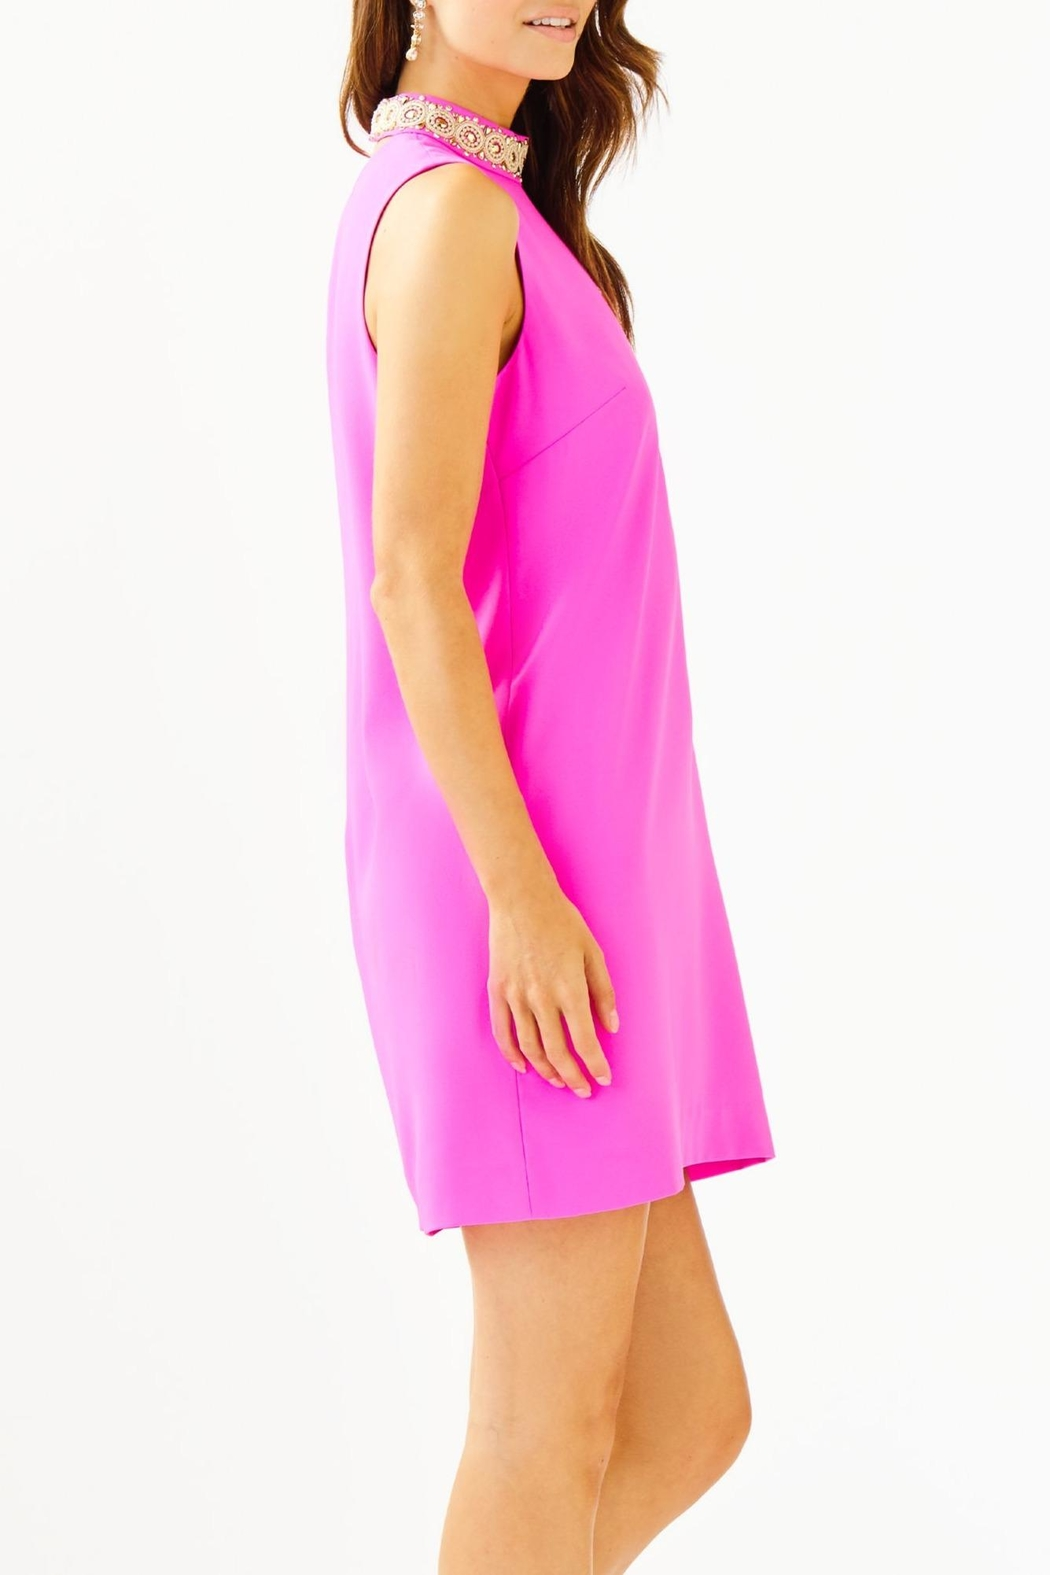 Lilly Pulitzer Brandi Beaded Dress - Side Cropped Image